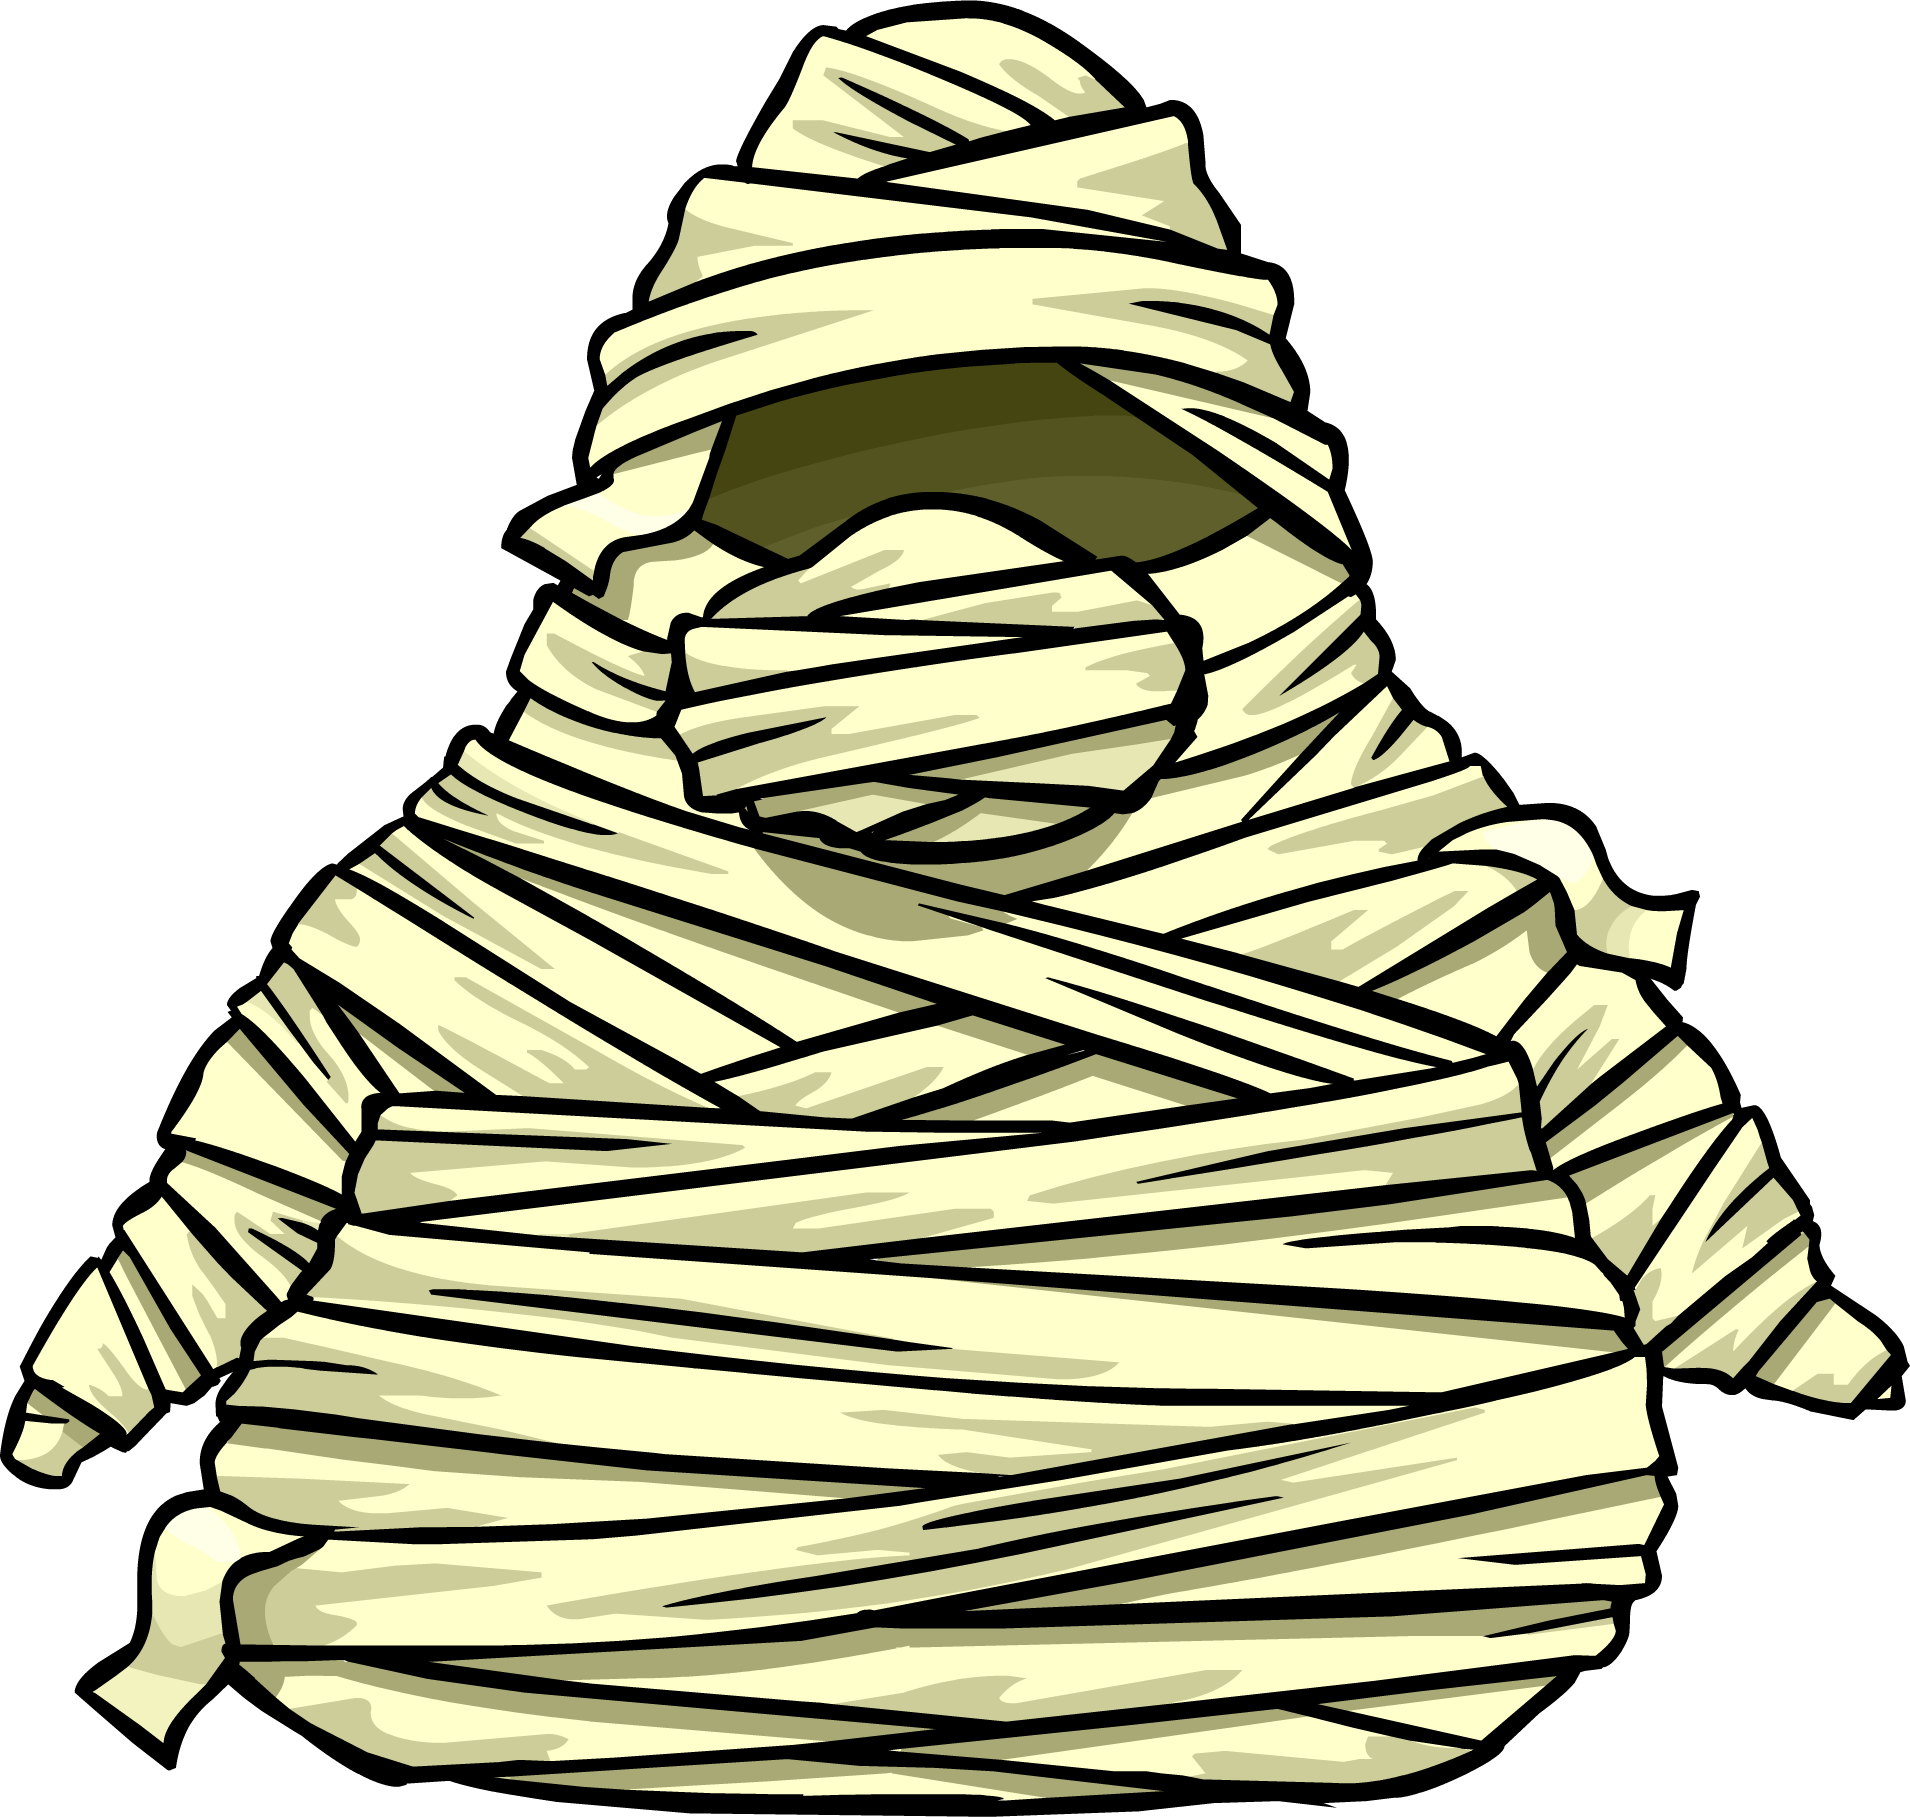 Halloween mummy clipart svg black and white download Halloween mummy pictures clipart image 3 - Clipartix svg black and white download